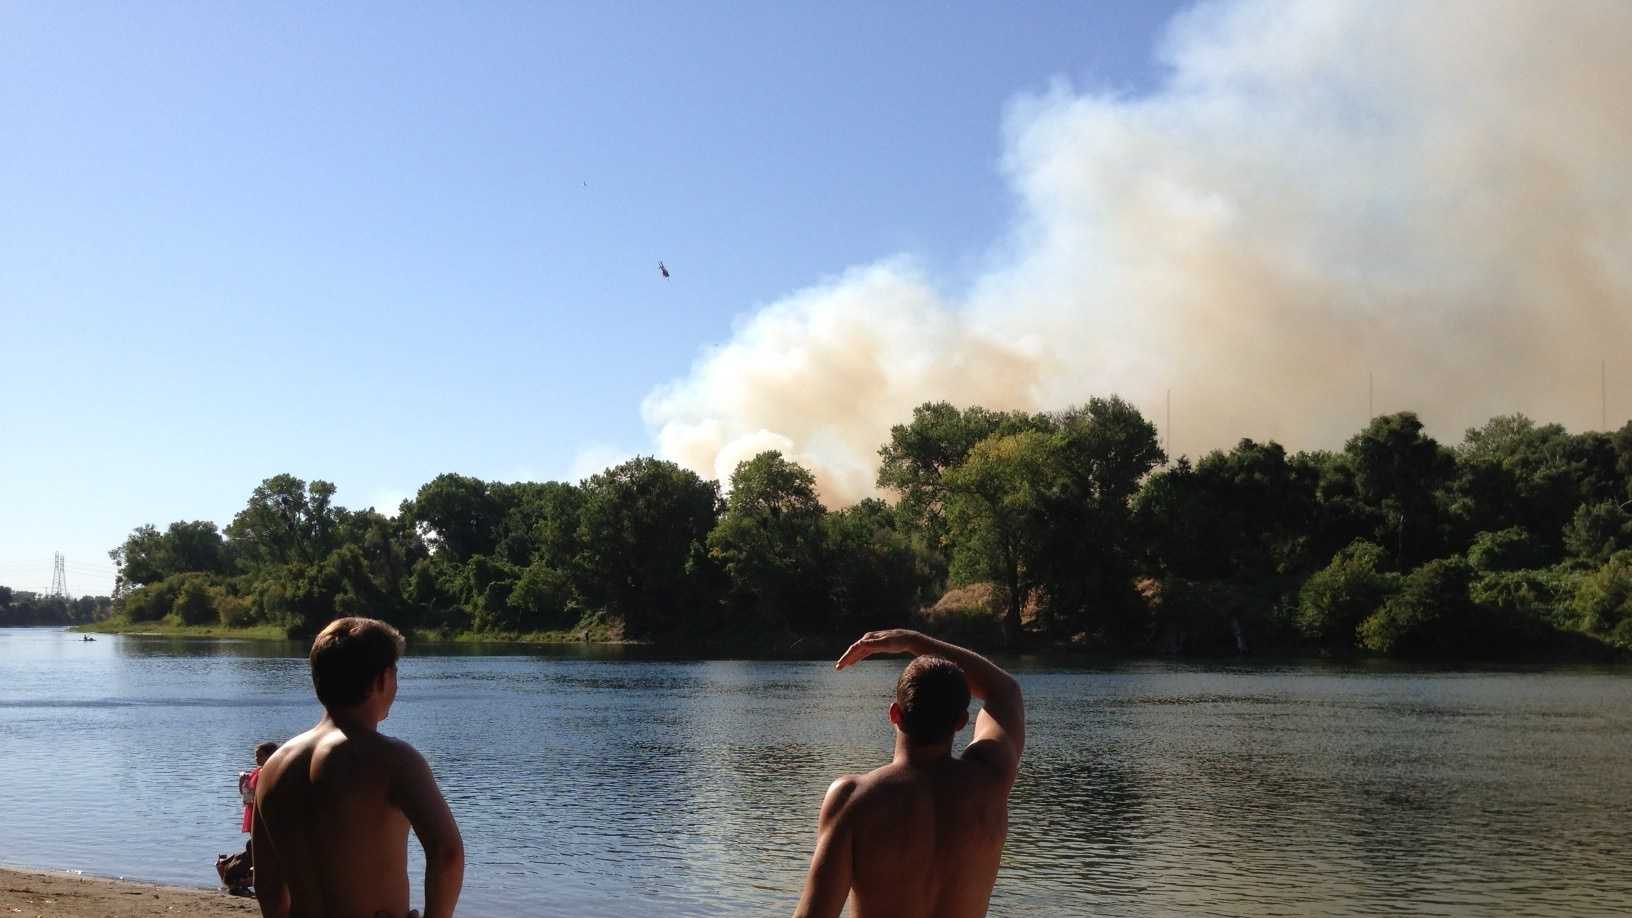 A grass fire broke out along Highway 160, north of downtown Sacramento.